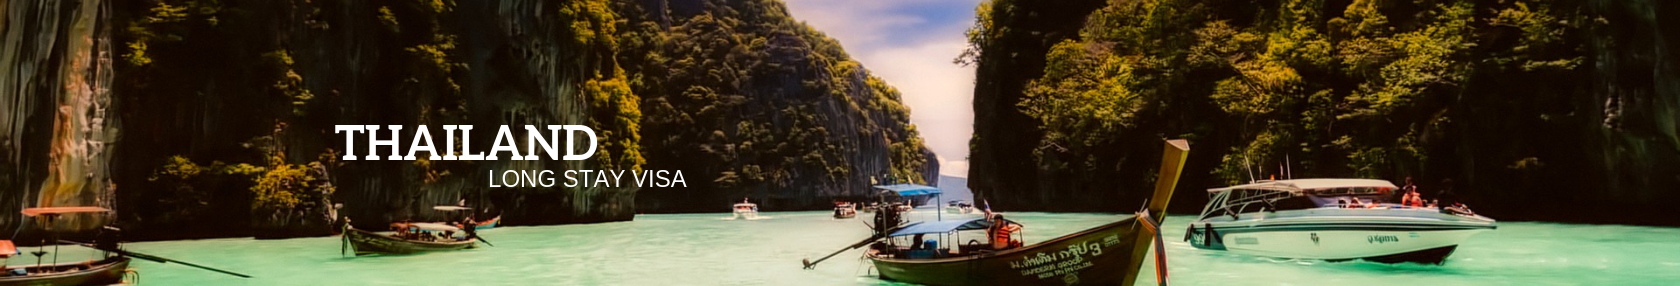 Thailand, Special Long Stay Visa